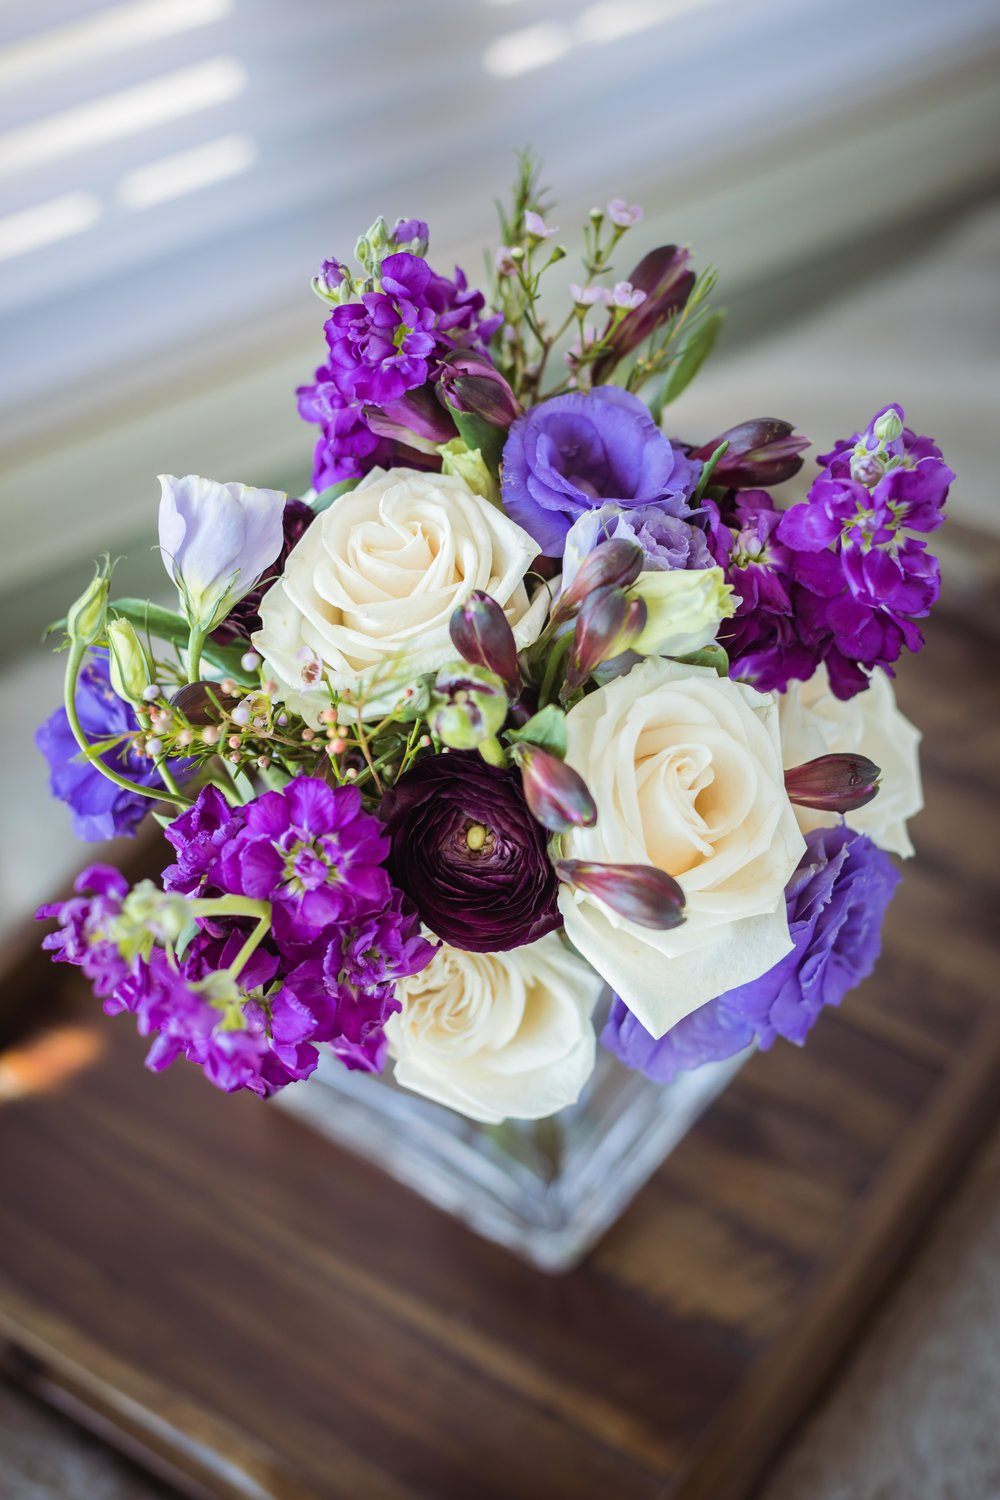 Blush 'n Blossoms Floral Design Gallery